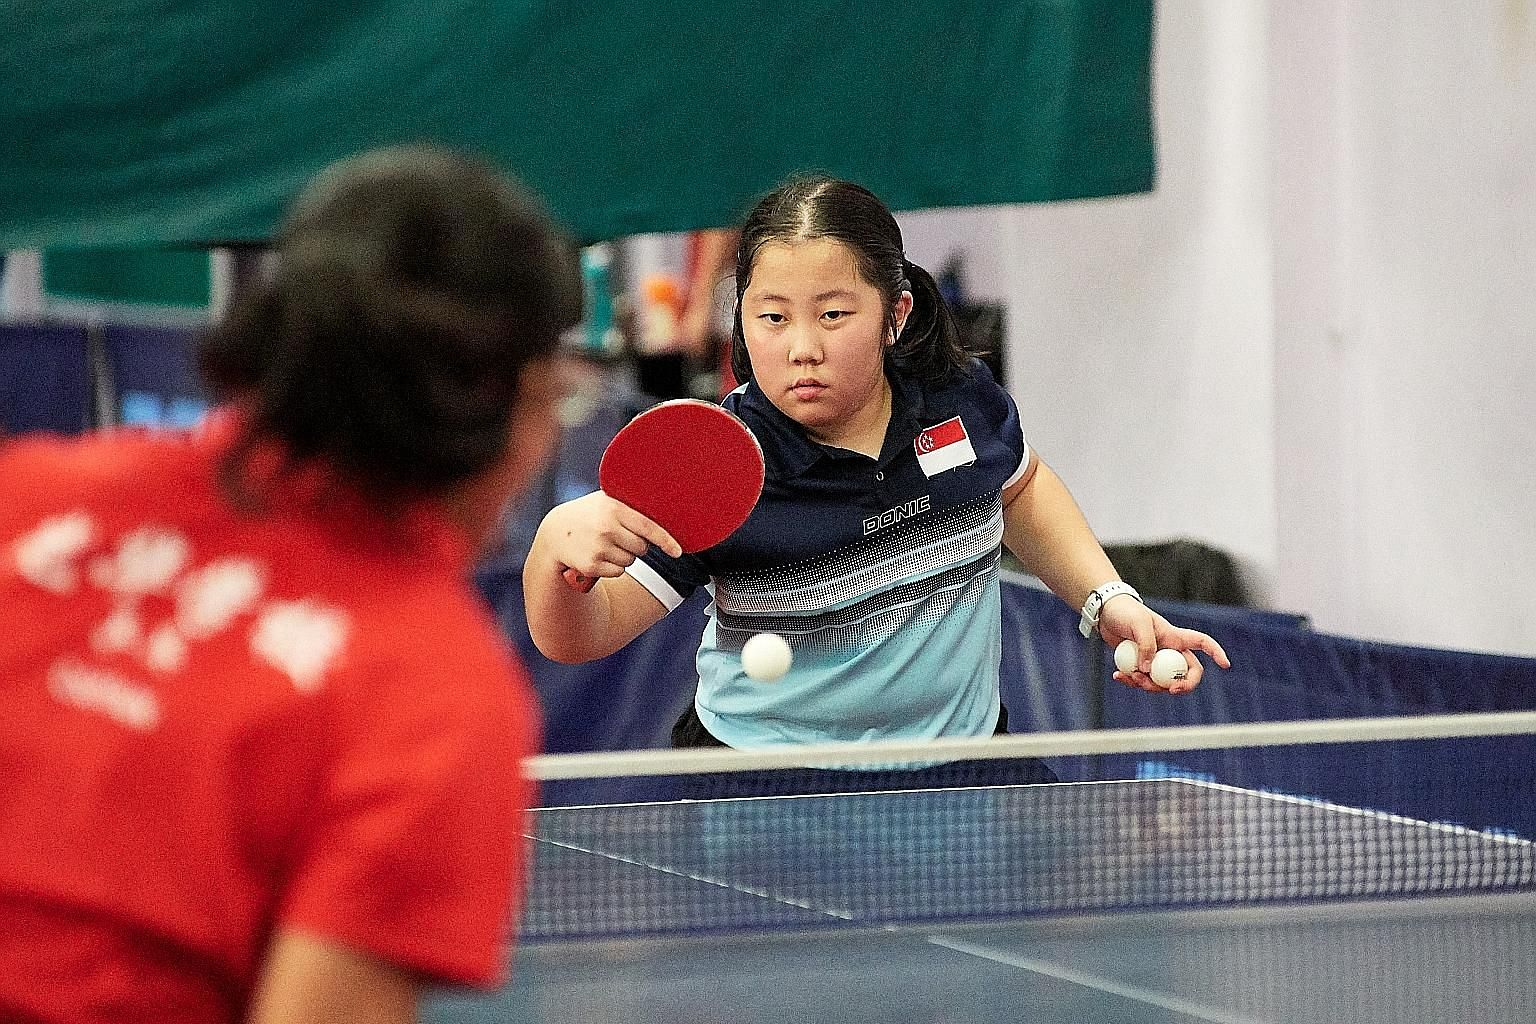 Lim Qi, who is ranked 11th in her age group, at a practice session at the Singapore Table Tennis Association. The 12-year-old excels not only in table tennis but also in her studies.